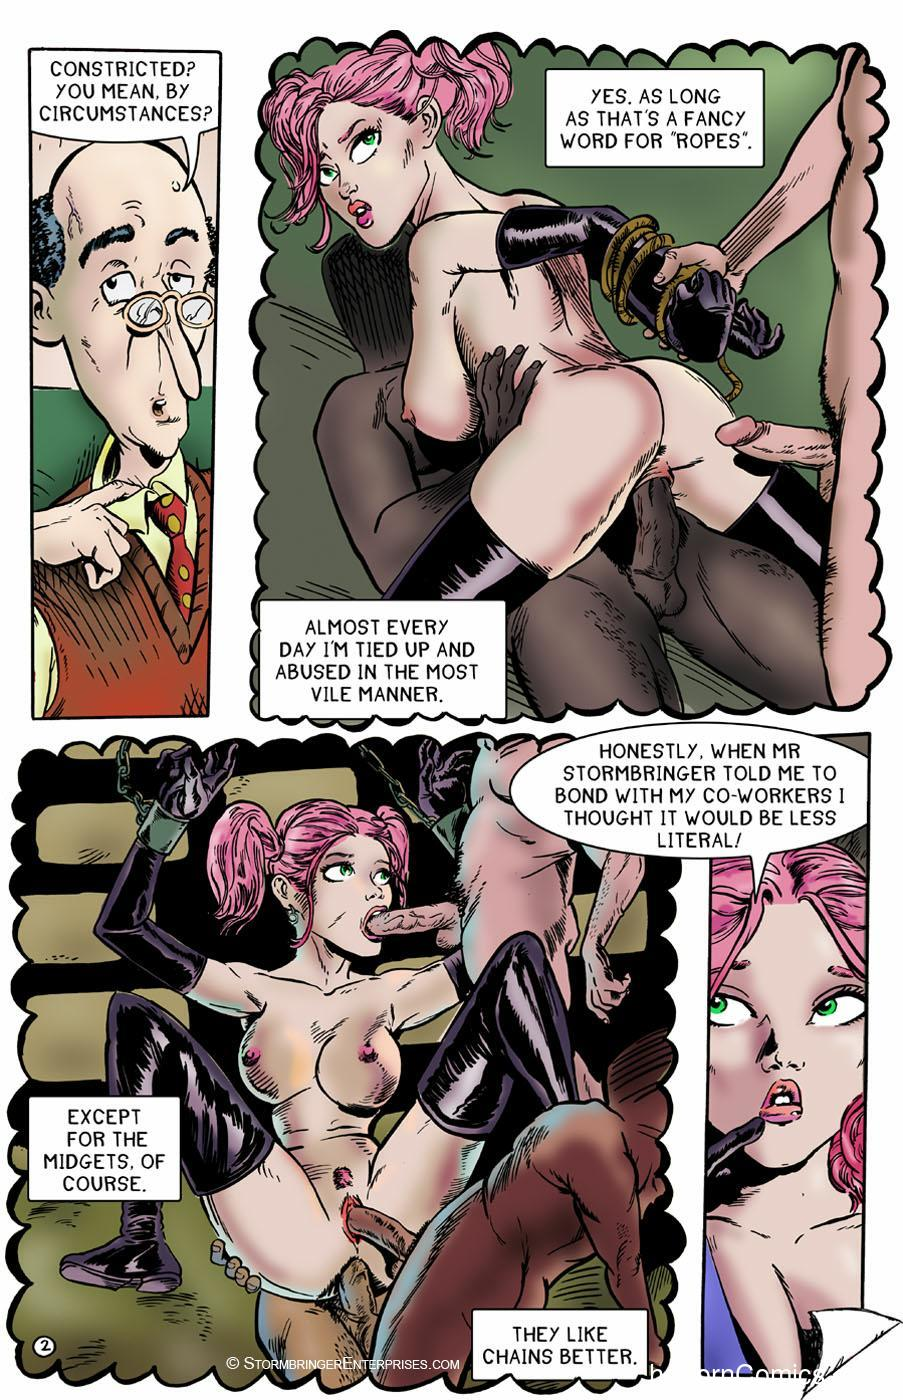 Erotic Adventures of Candice 01-1855 free sex comic